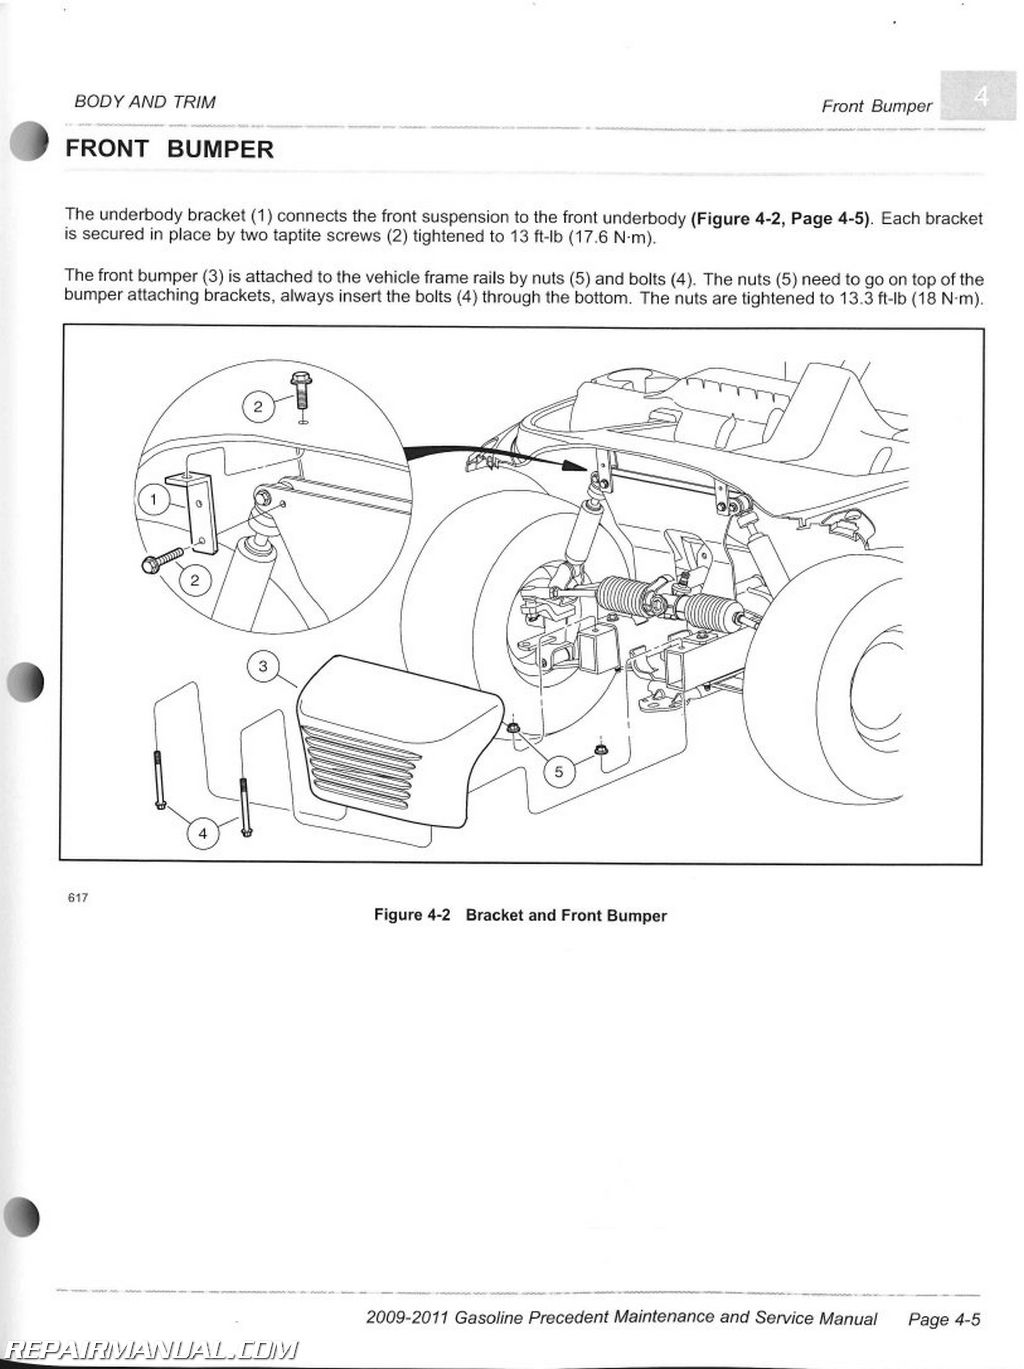 i am looking for a wiring diagram for a 2004 48 club car